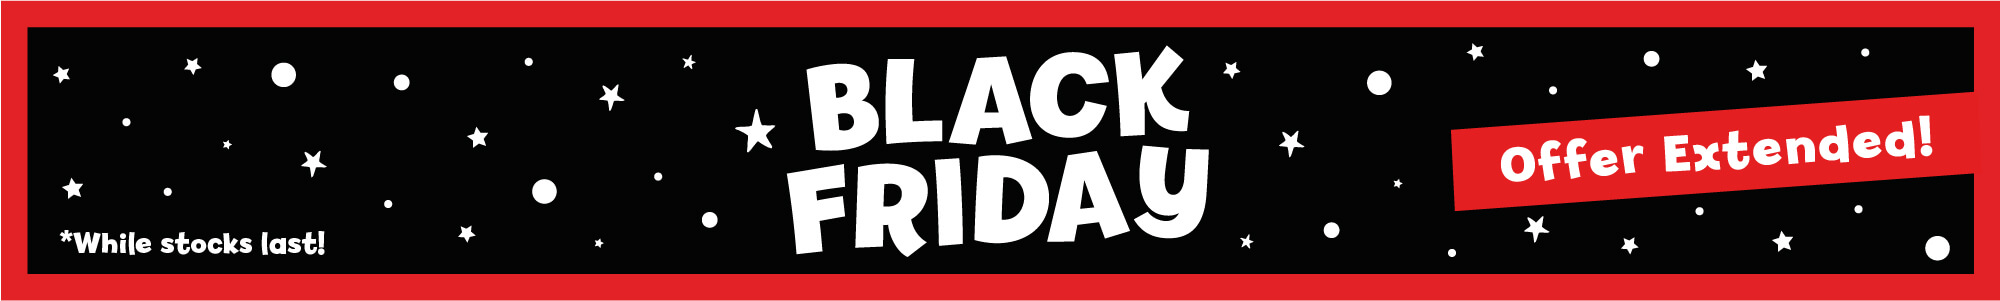 Black Friday 2020_Page Banner_2000x300px_extended (1) (1).jpg